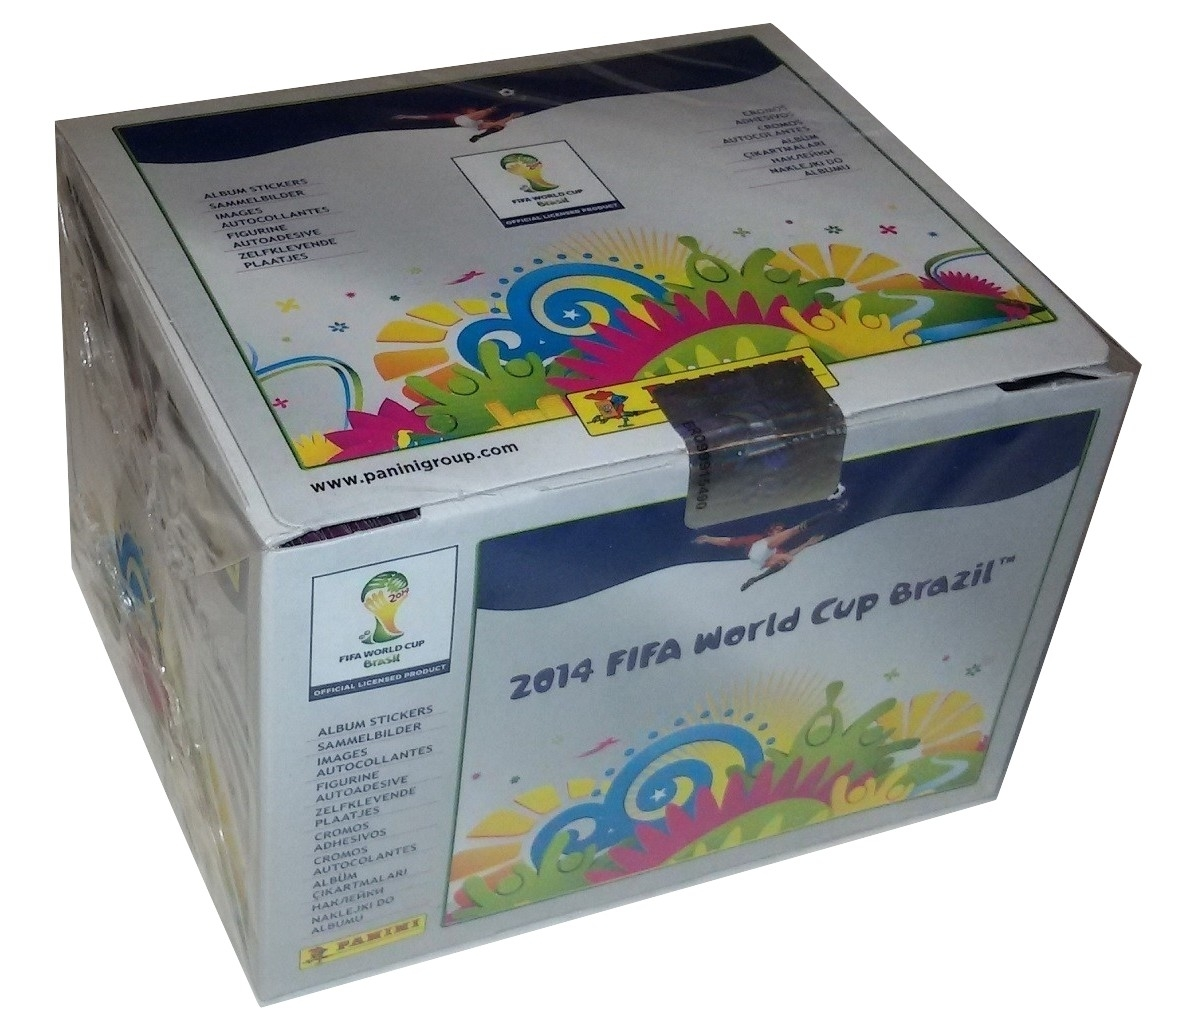 Brasil 2014 Grey Edition Box 100 Packs Stickers Panini World Cup - $42.00